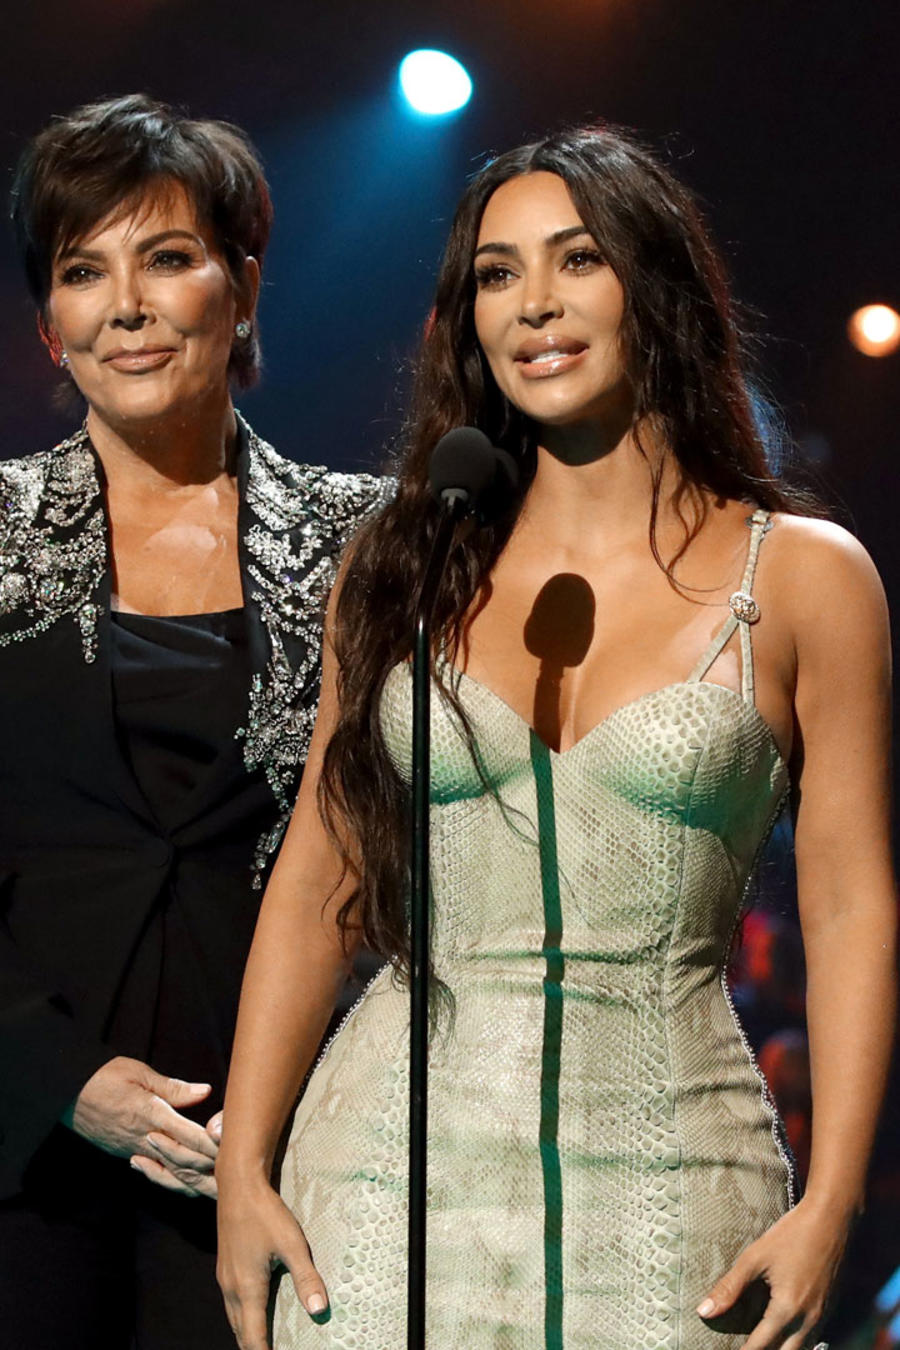 Kris Jenner, Kourtney Kardashian, Khloé Kardashian y Kim Kardashian en los People's Choice Awards 2019